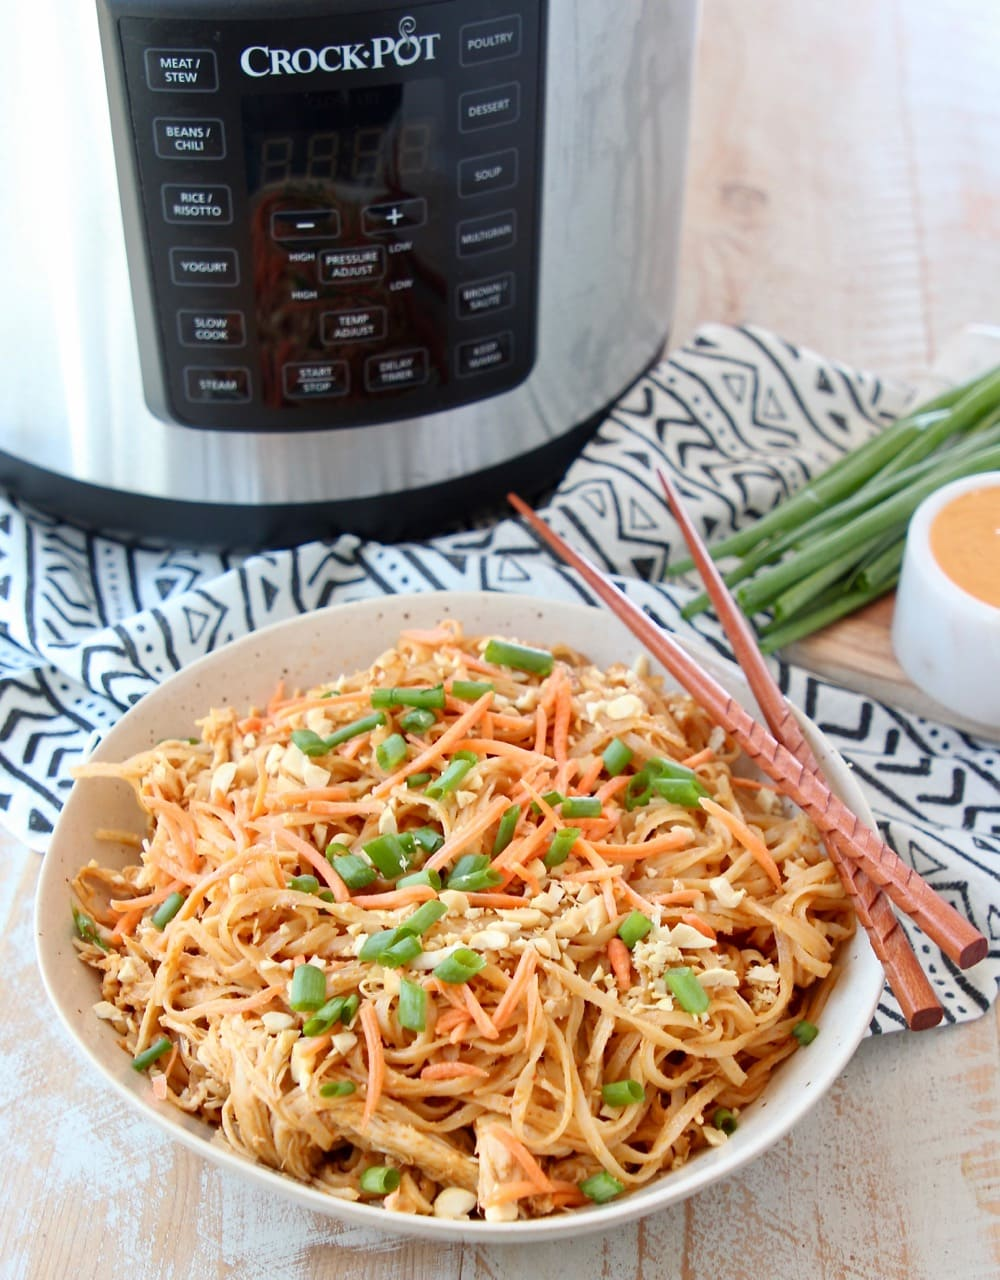 Thai peanut chicken noodles in bowl with chopsticks and Crock Pot Express Crock Multi Cooker